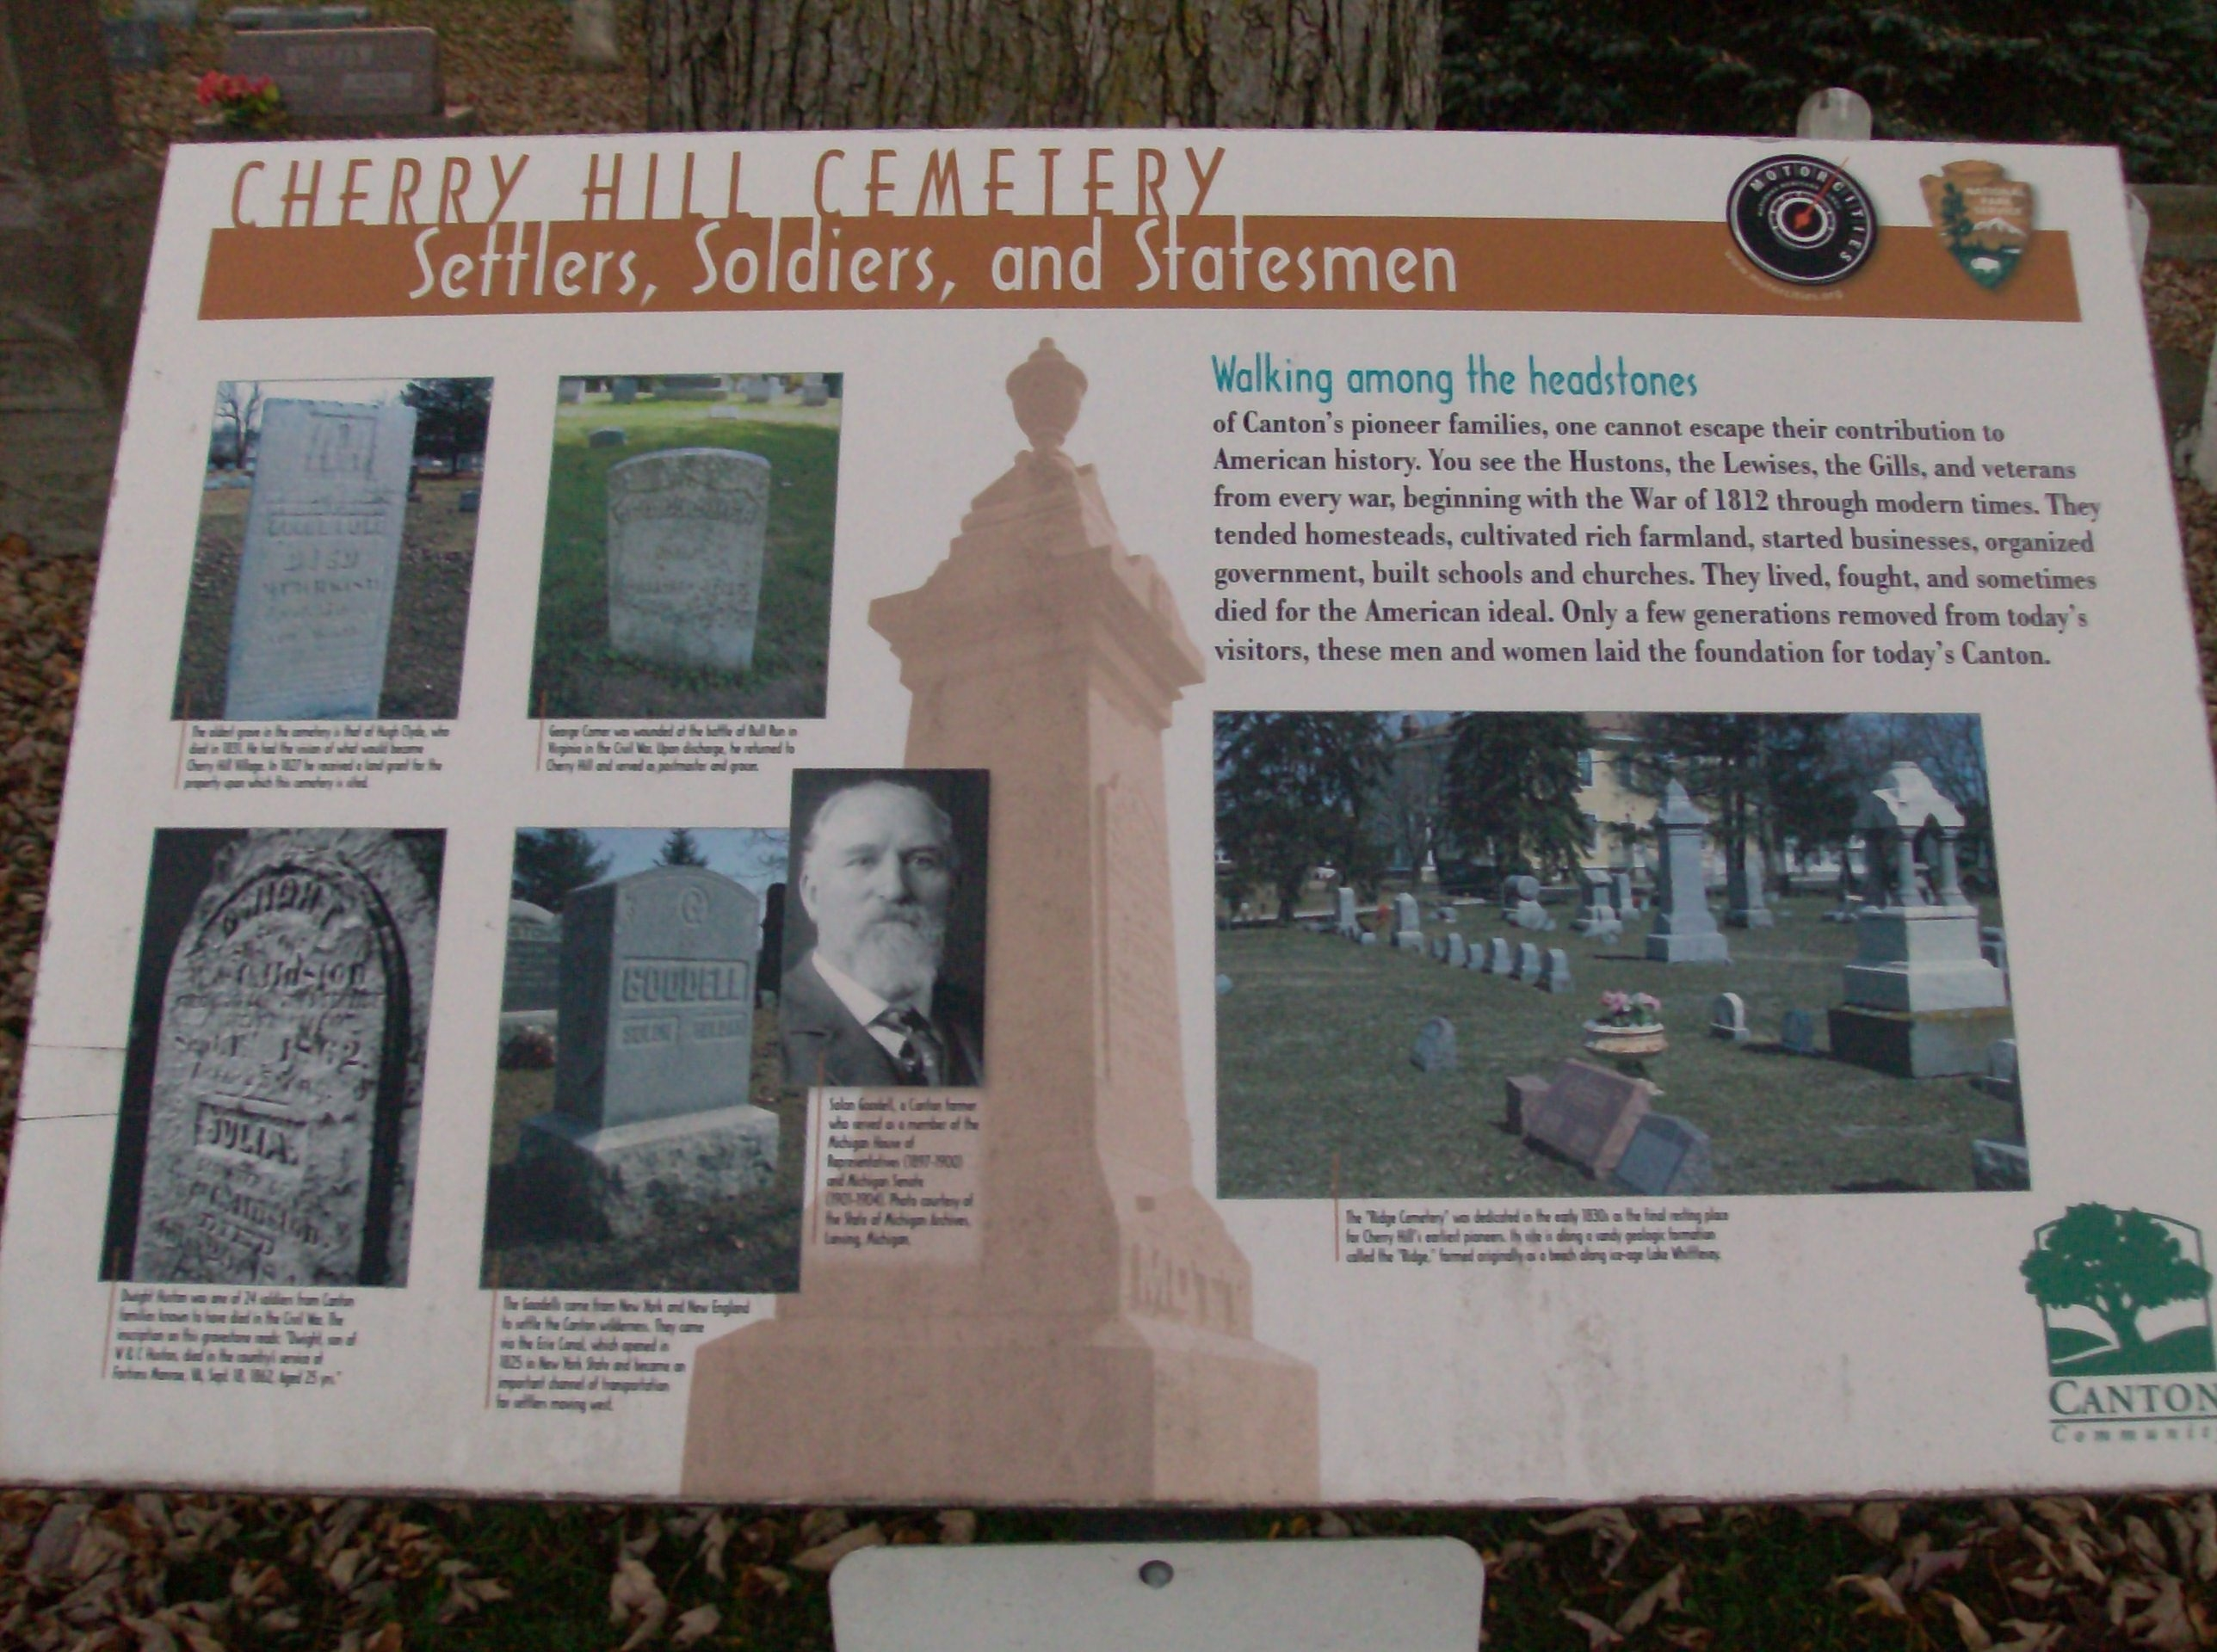 Cherry Hill Cemetery: Settlers, Soldiers, and Statesmen Marker